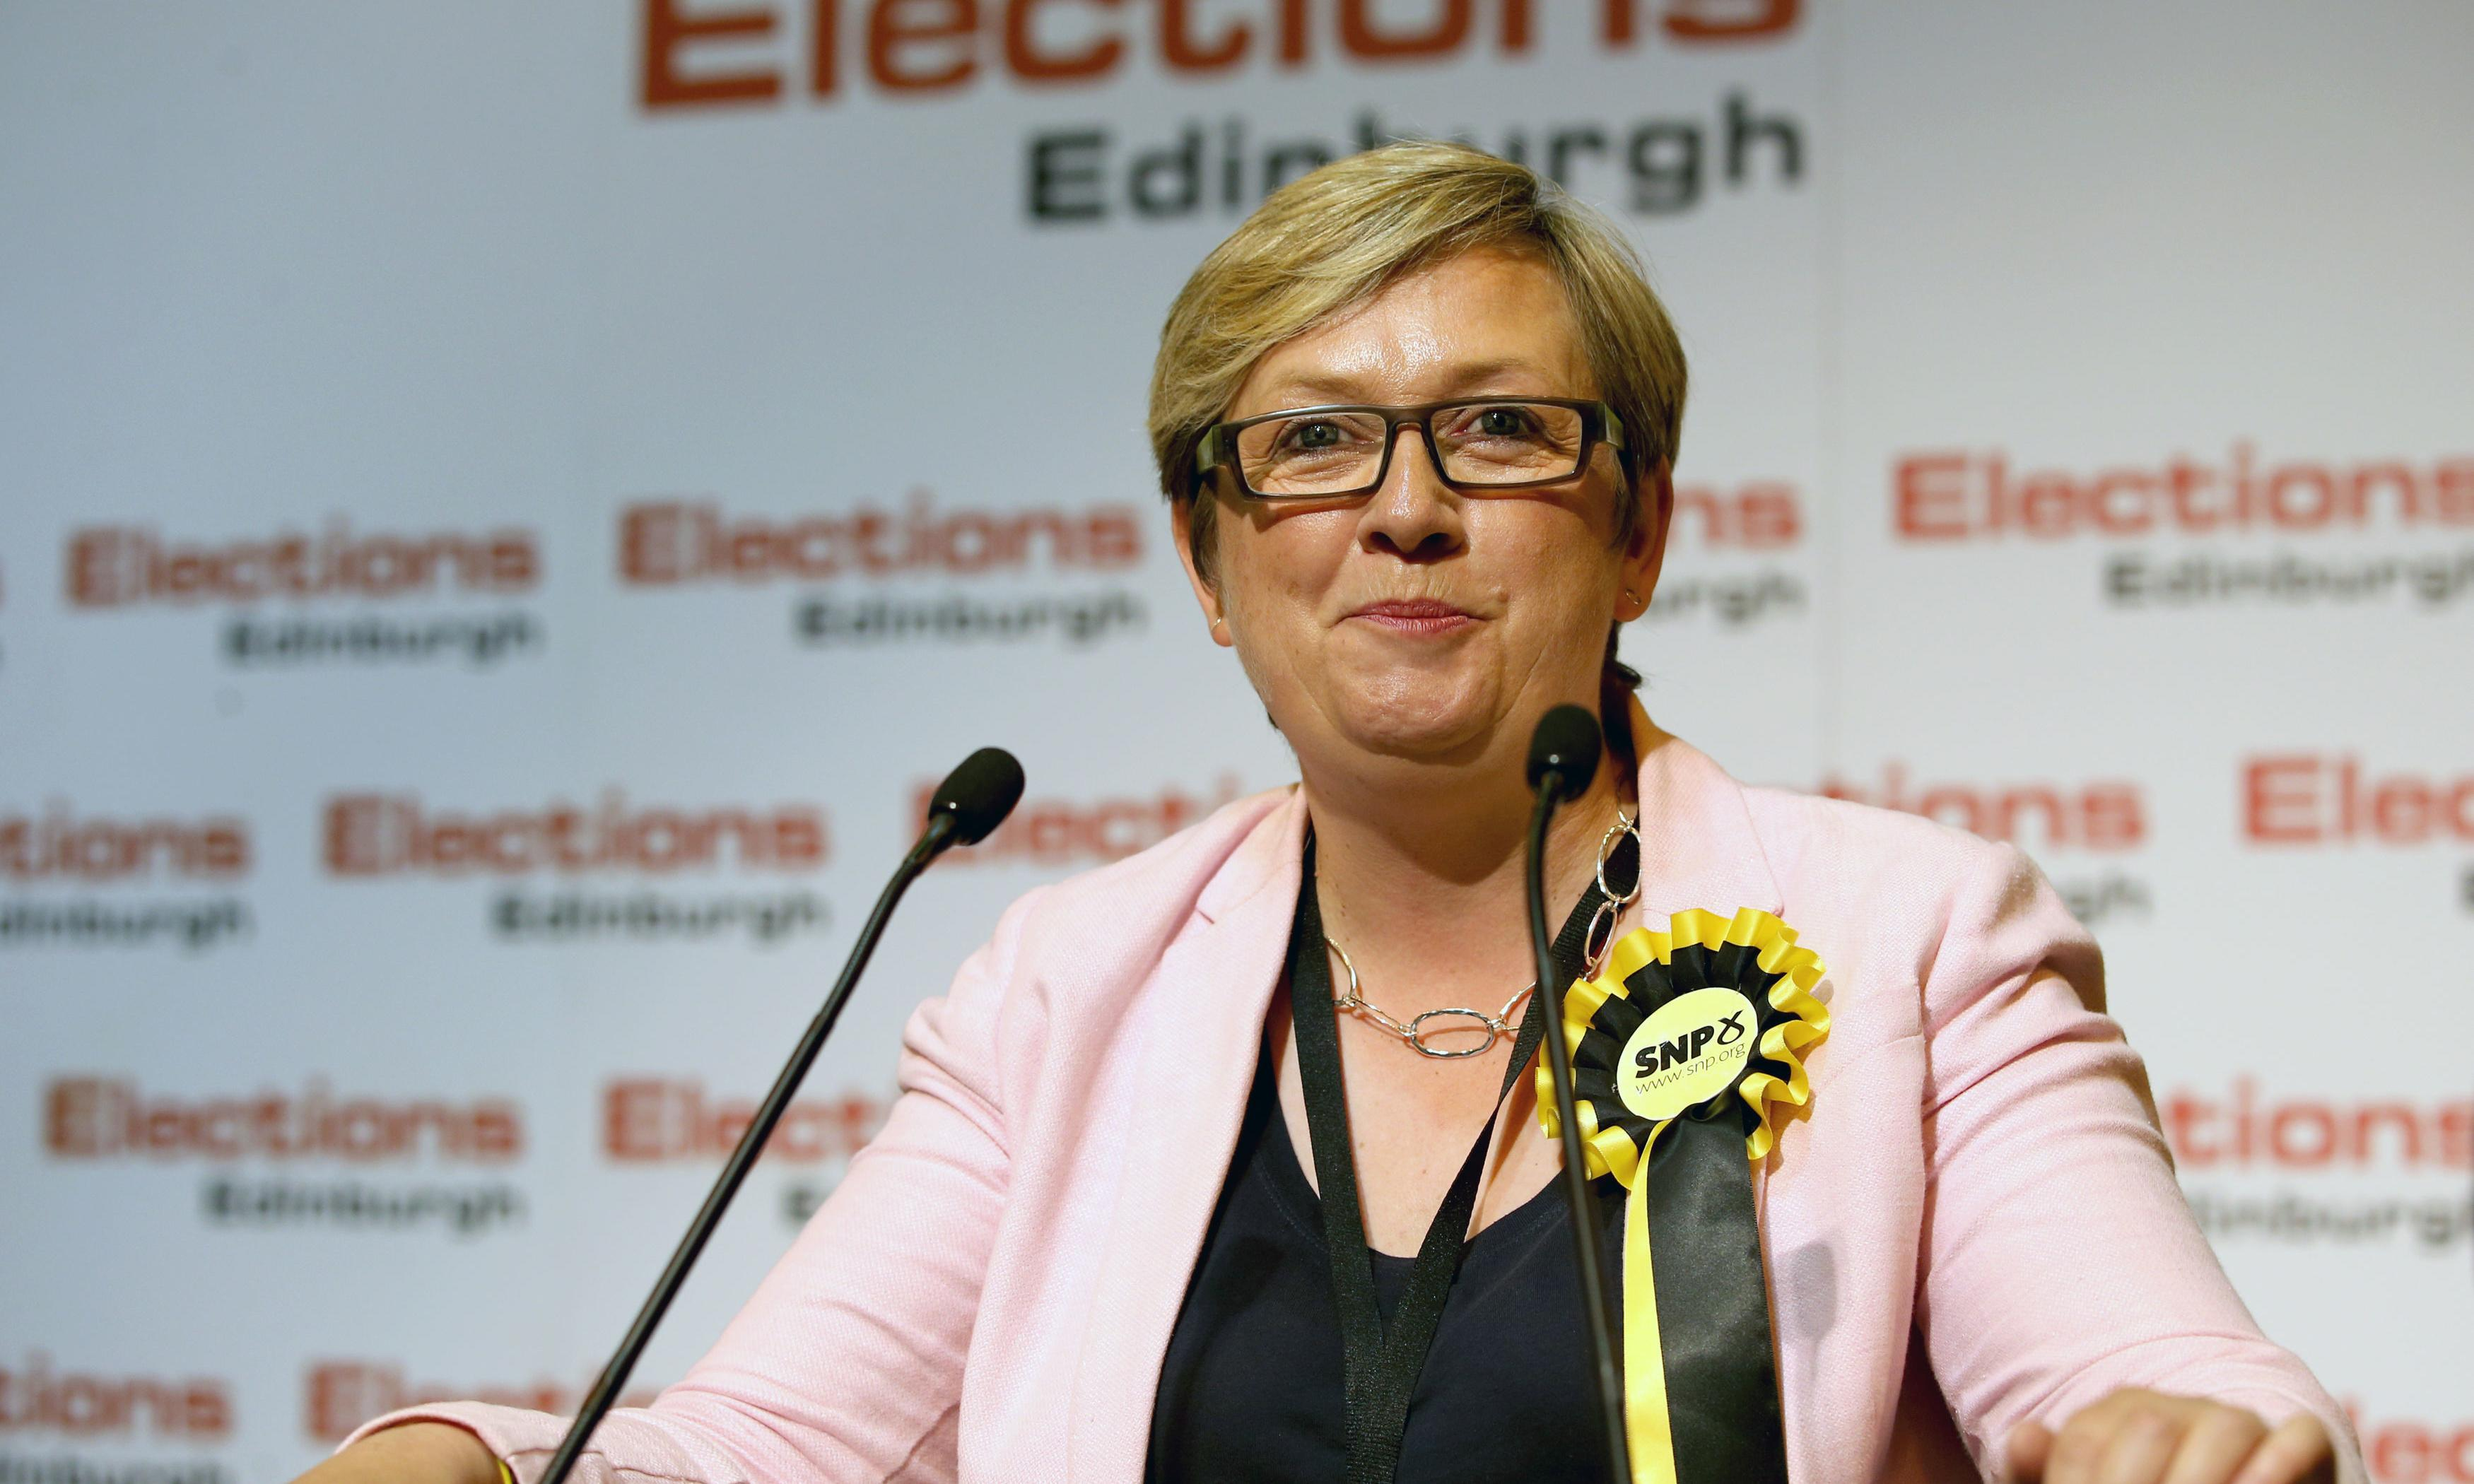 The SNP's failure to defend abused politicians belies its caring image